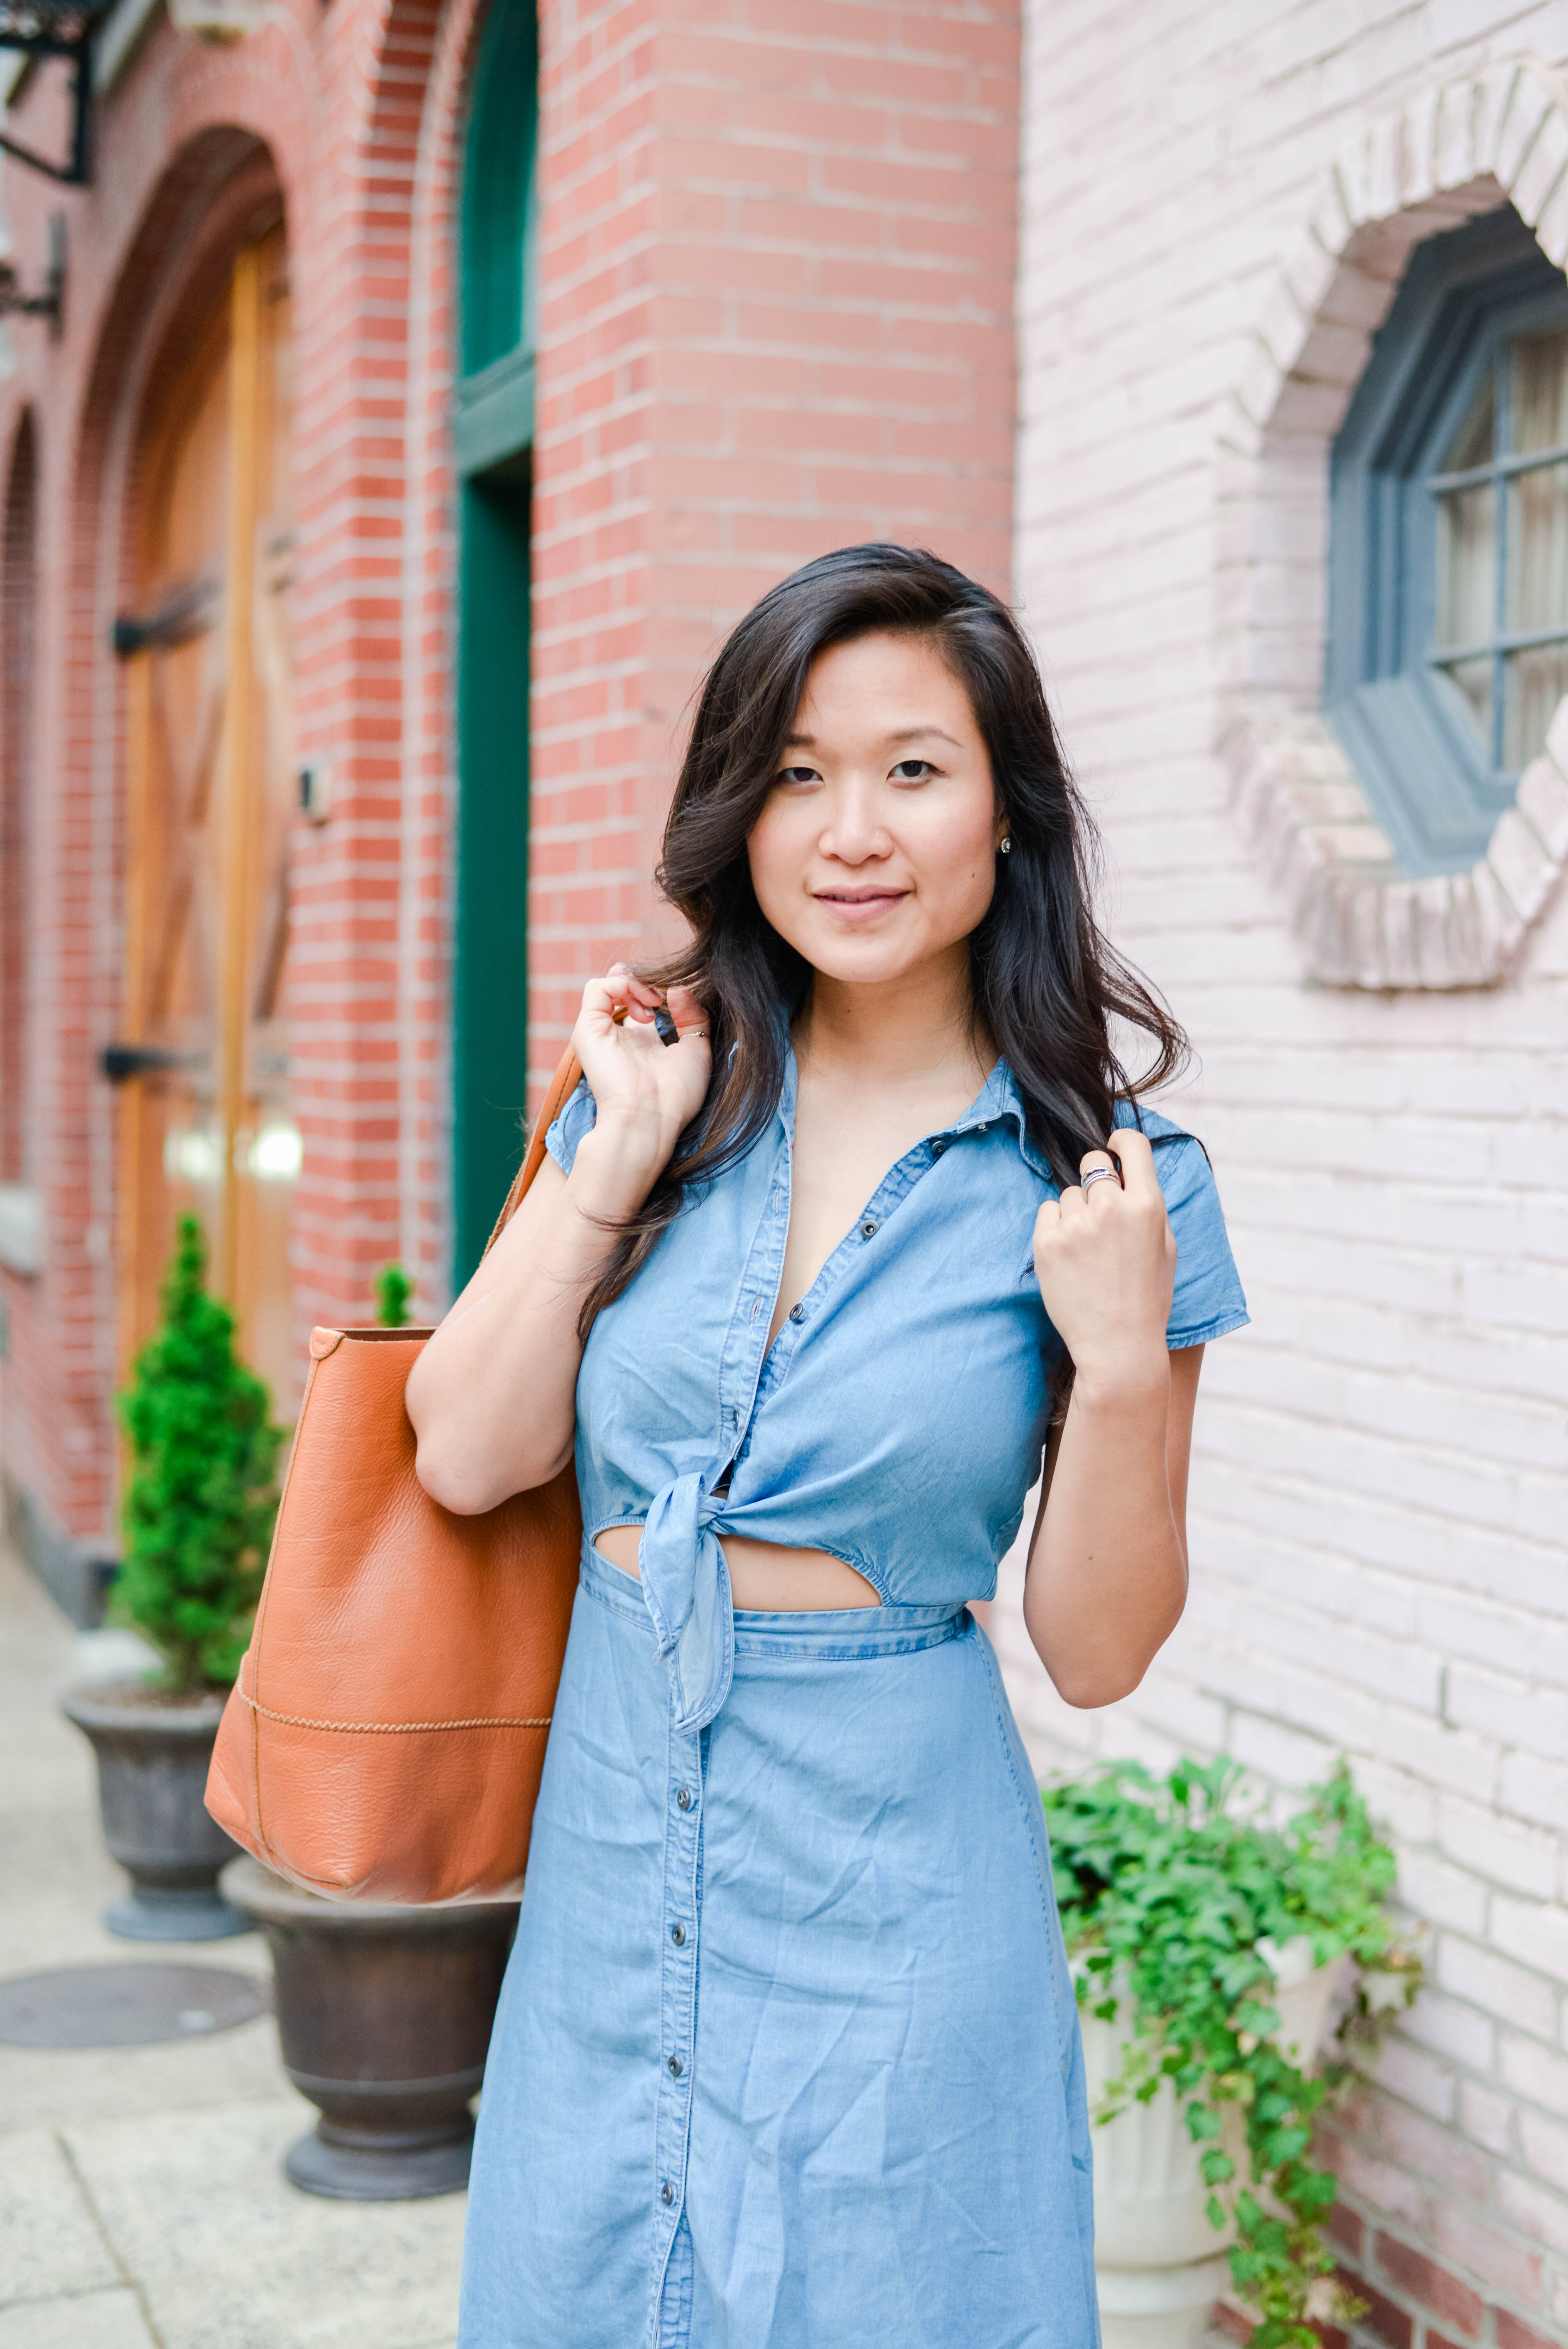 Philadelphia_Blogger_Fashion_Blog_Portrait_Photographer_Andrea_Krout_Photography_Style-5